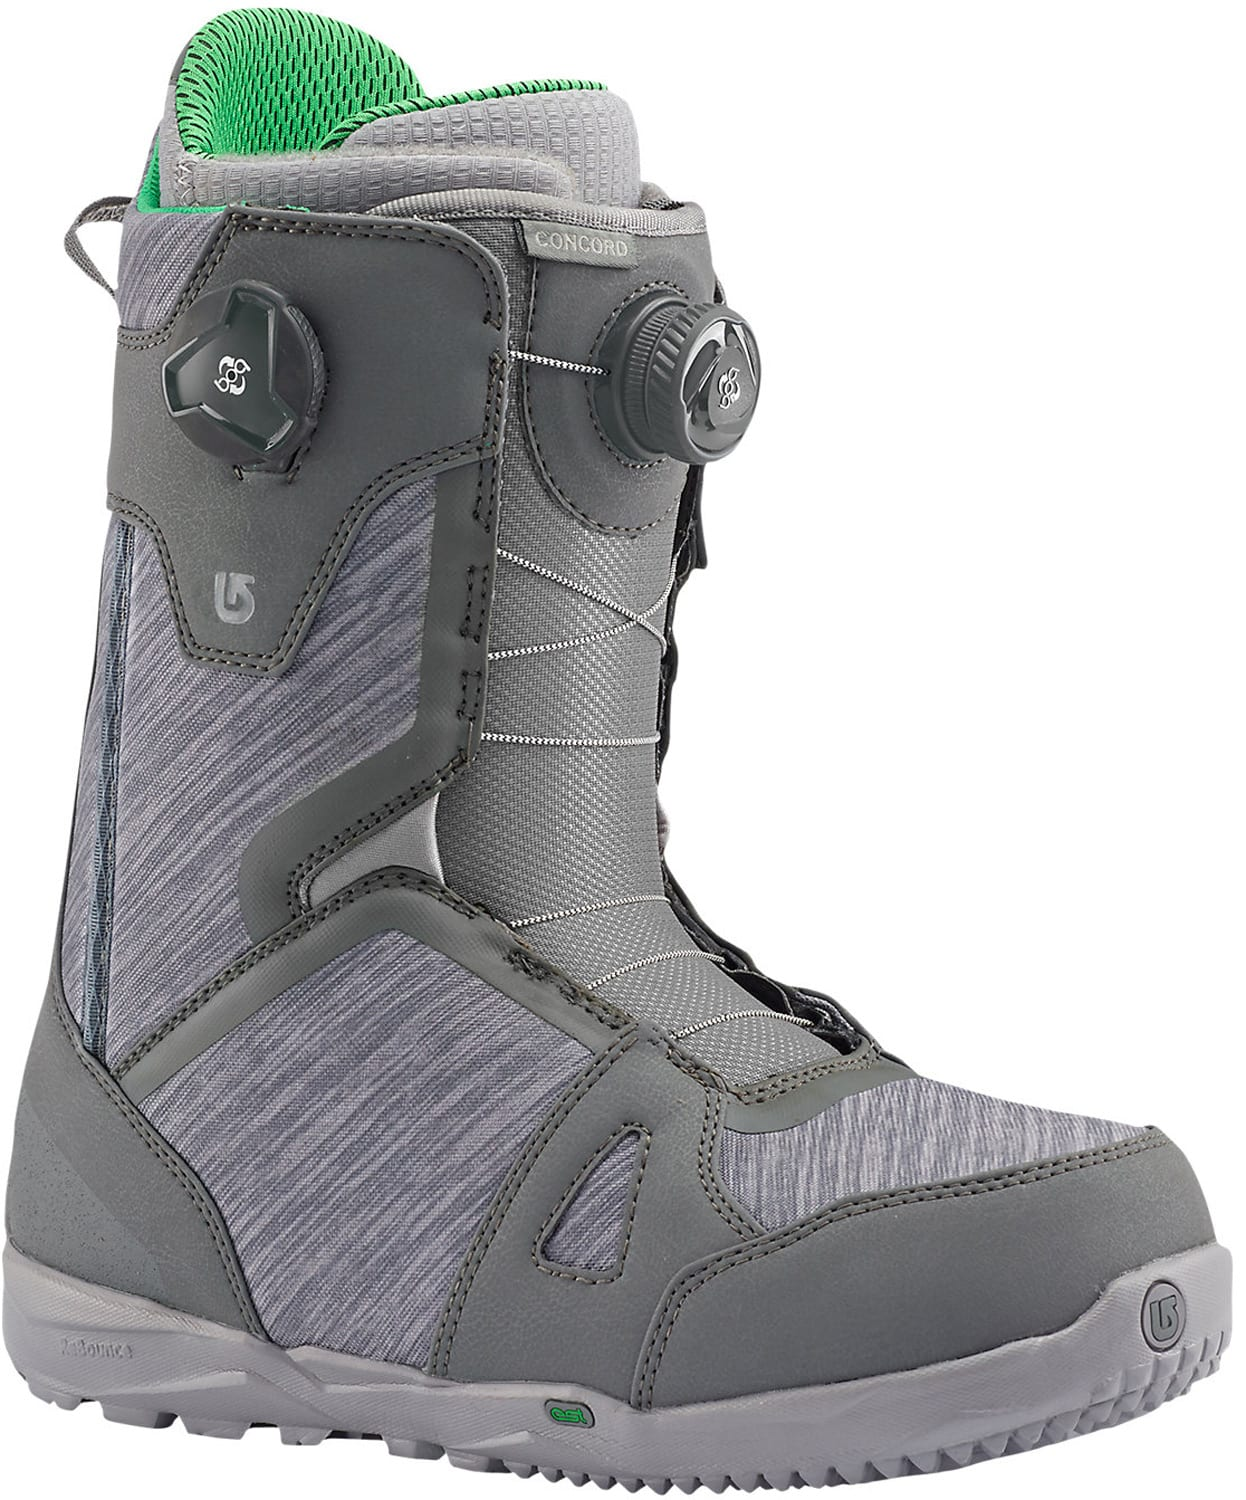 on sale burton concord boa snowboard boots up to 40 off. Black Bedroom Furniture Sets. Home Design Ideas